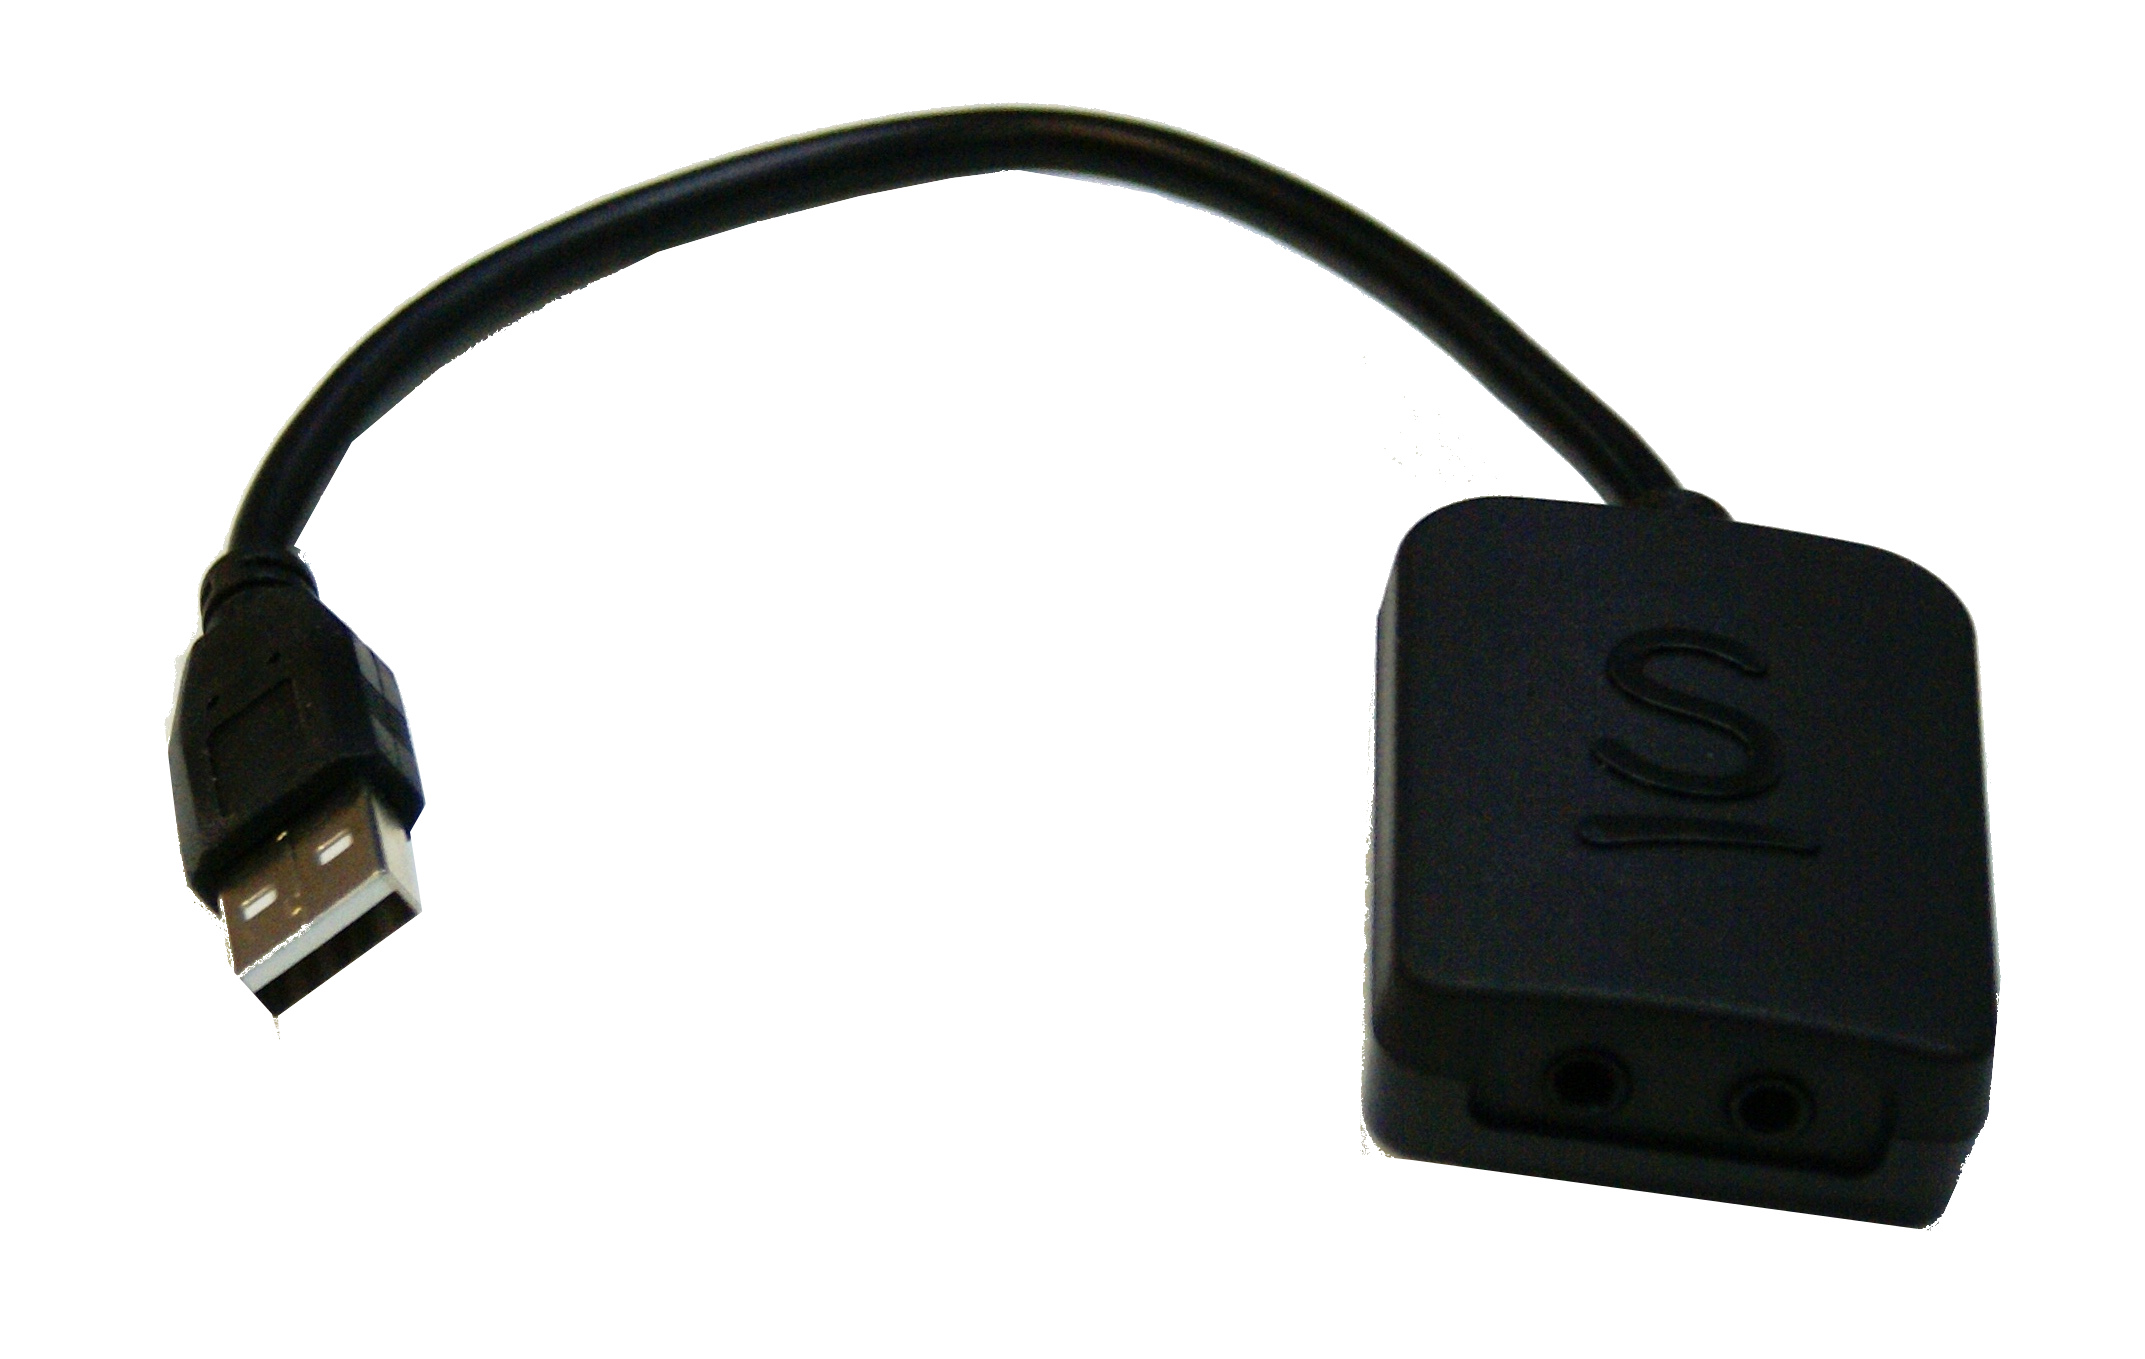 Joycable 3, USB Sensor u. Scanmodul